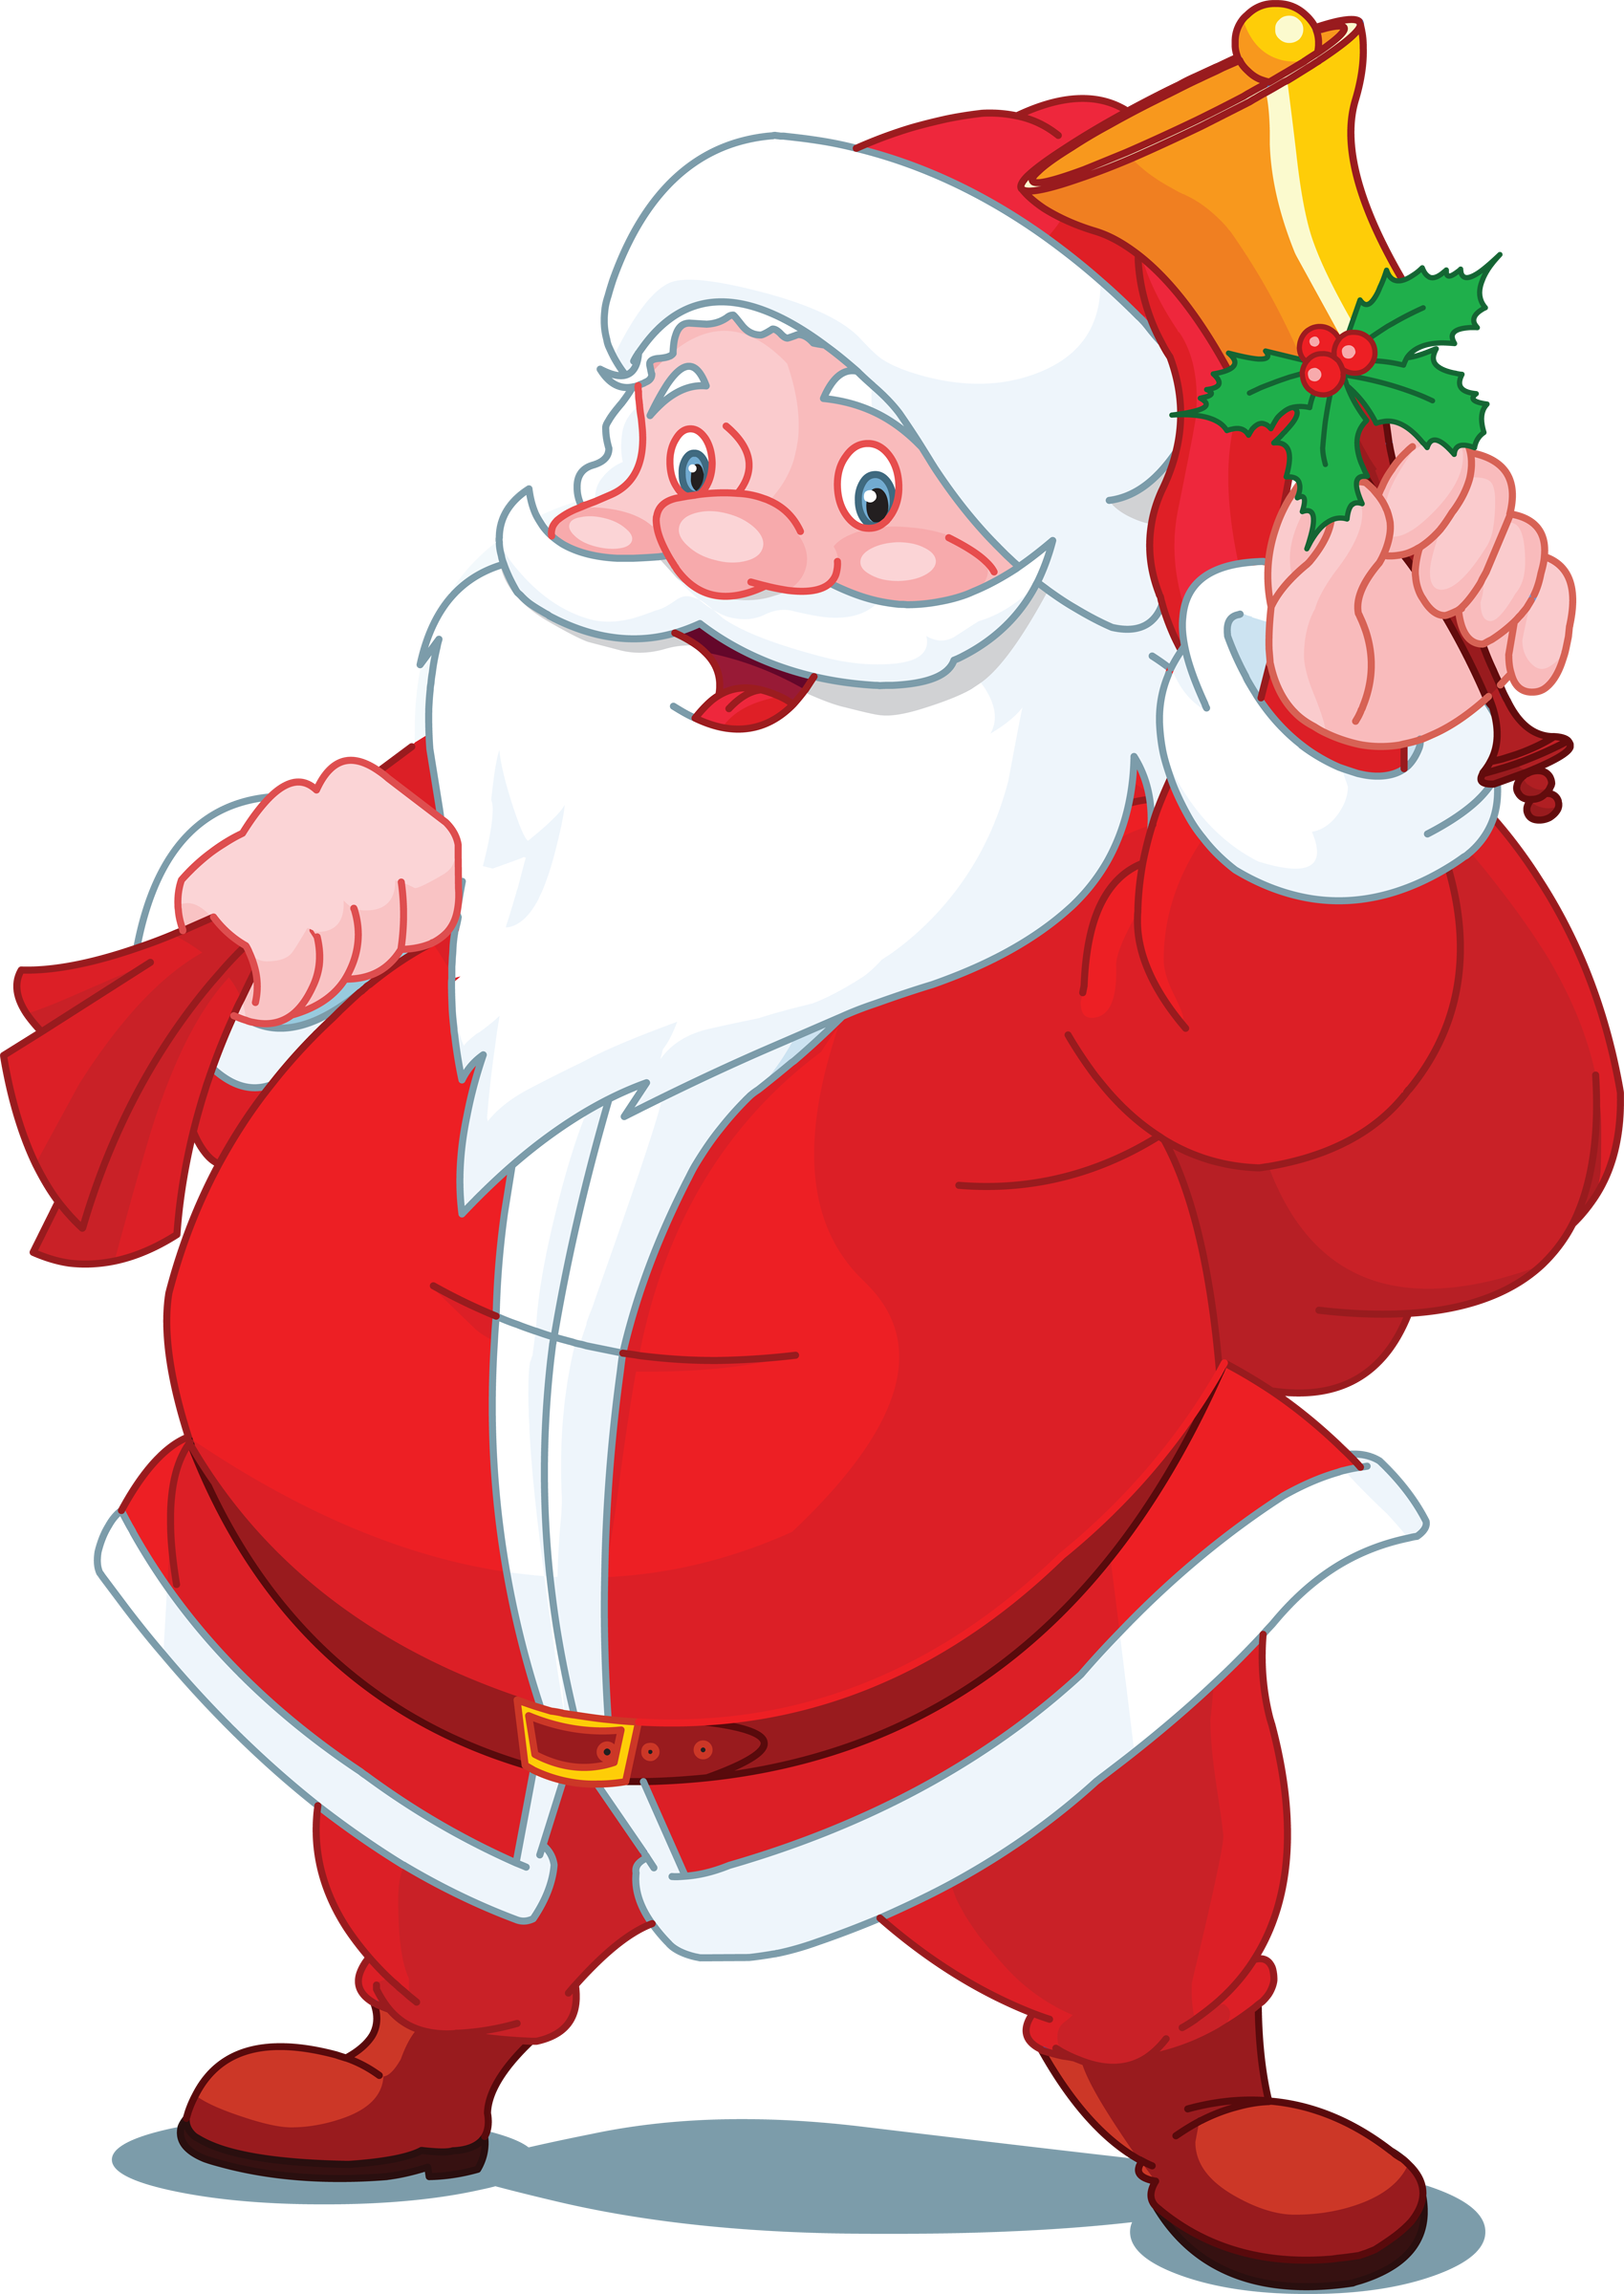 Santa Claus PNG Transparent Images | PNG All